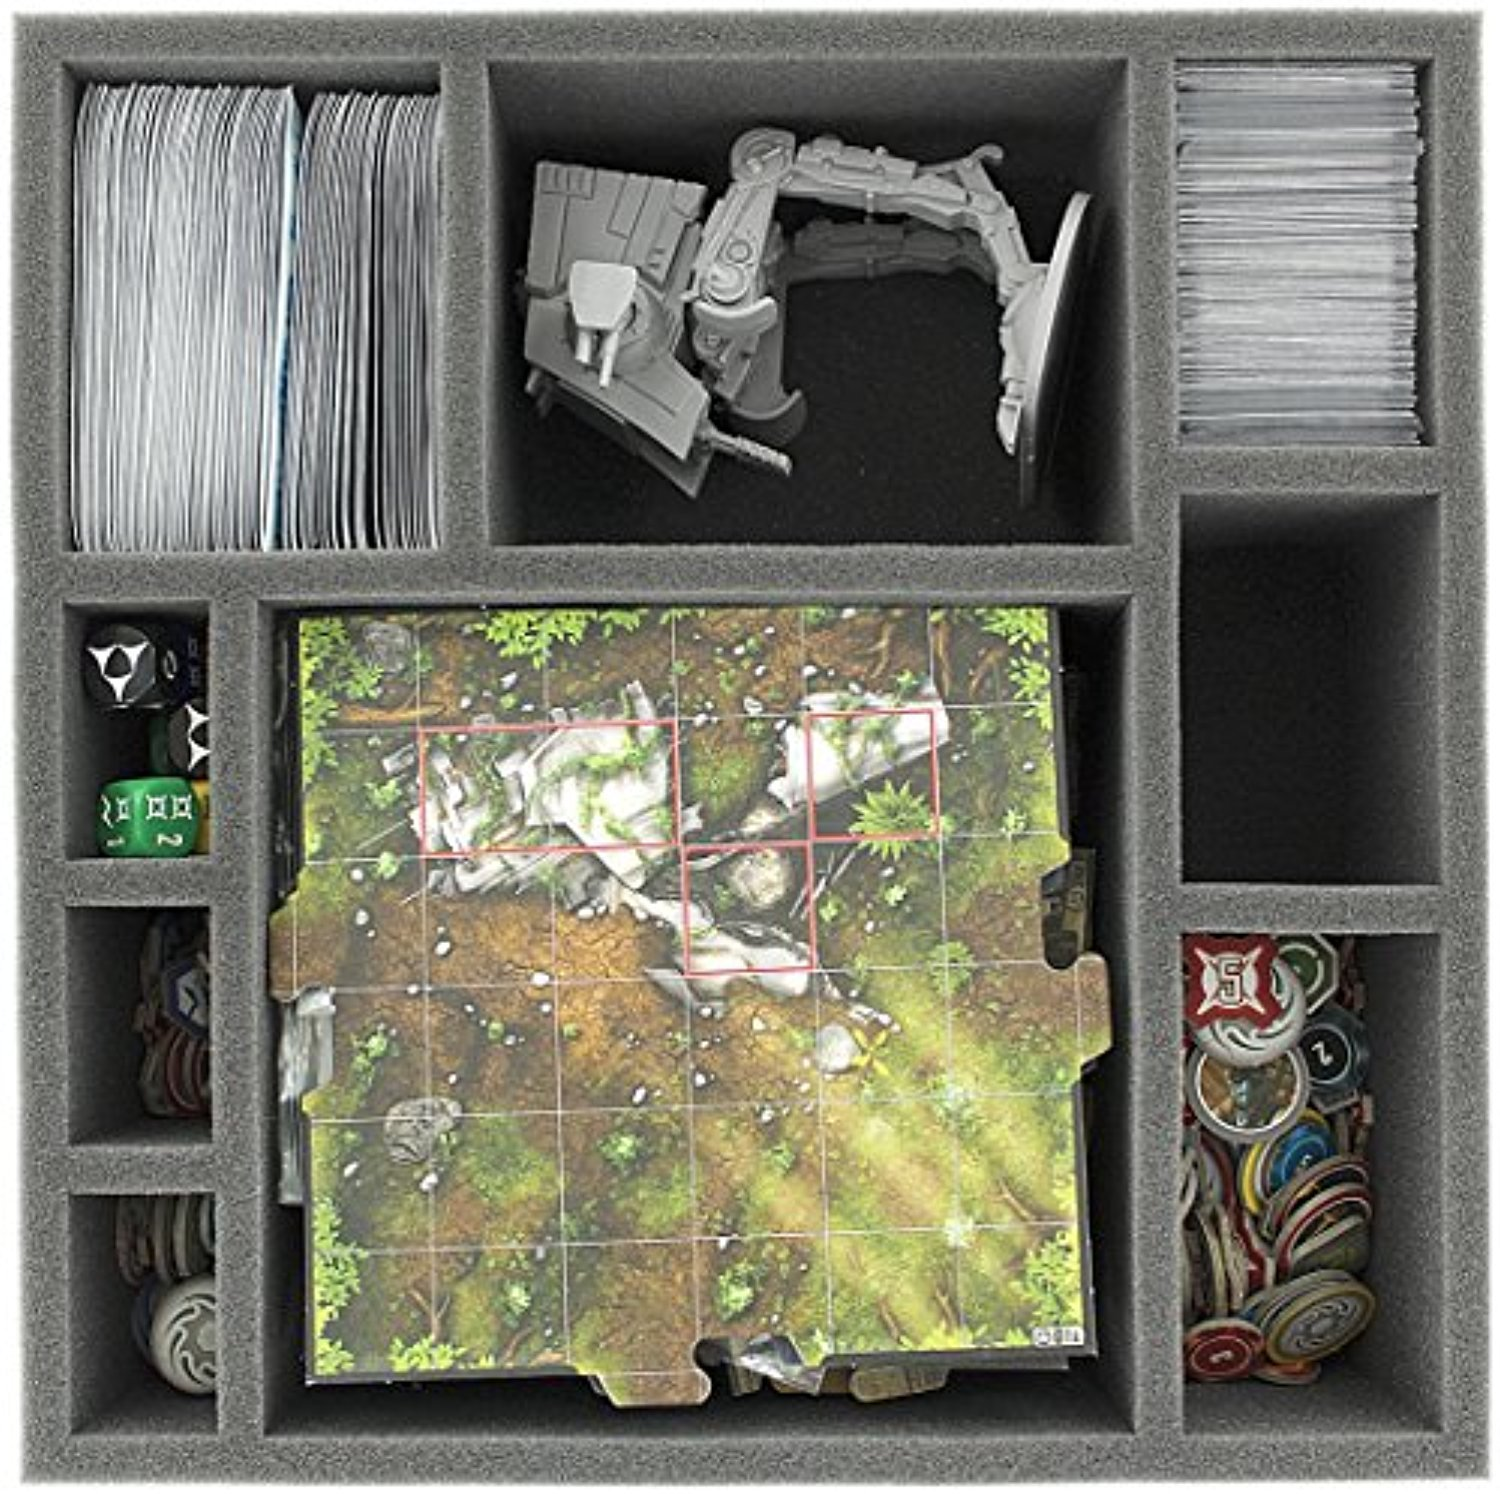 Foam tray set for Star Wars Imperial Assault board game box